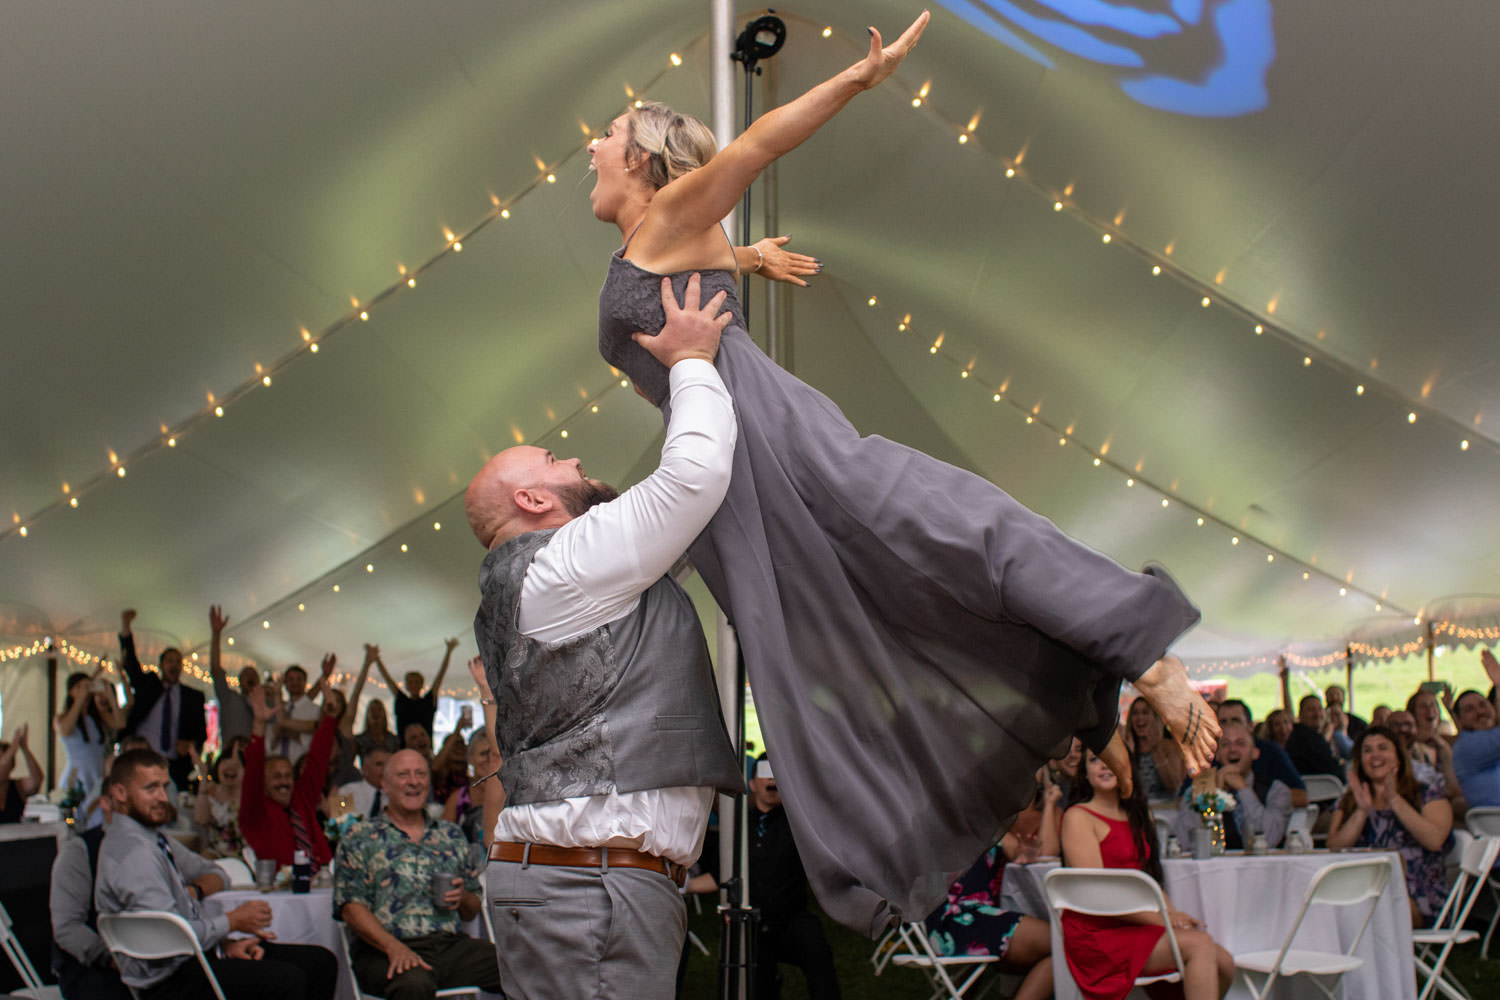 Bridesmaid and Groomsman copy dirty dancing lift during introduction